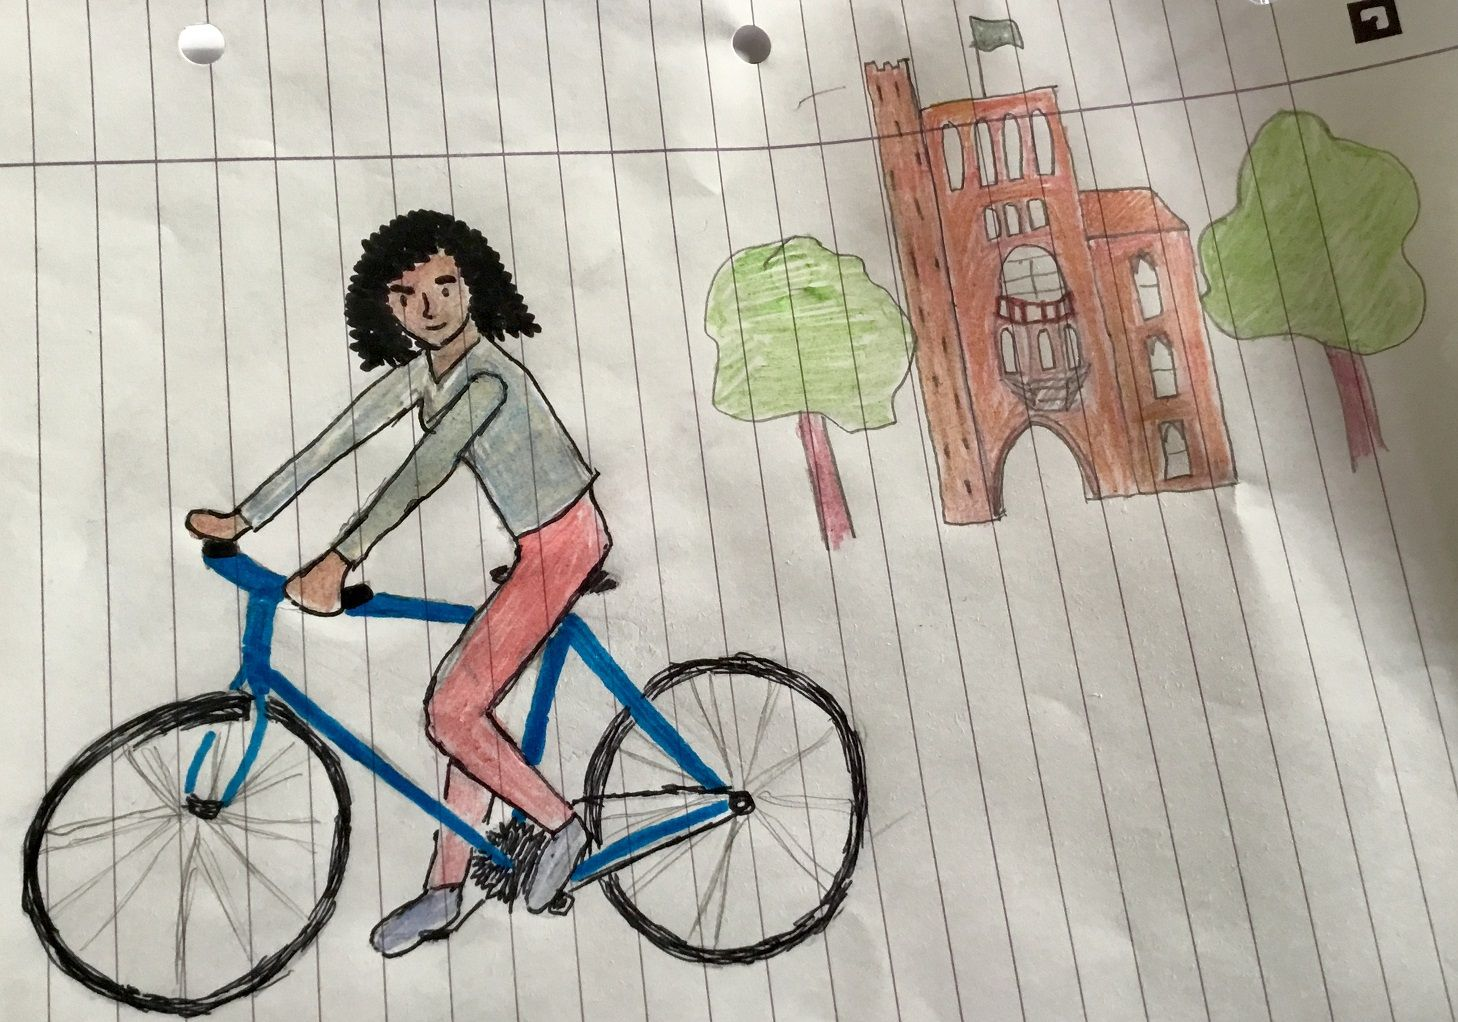 Image may contain: Drawing, Art, Human, Person, Machine, Wheel, Vehicle, Transportation, Bicycle, Bike